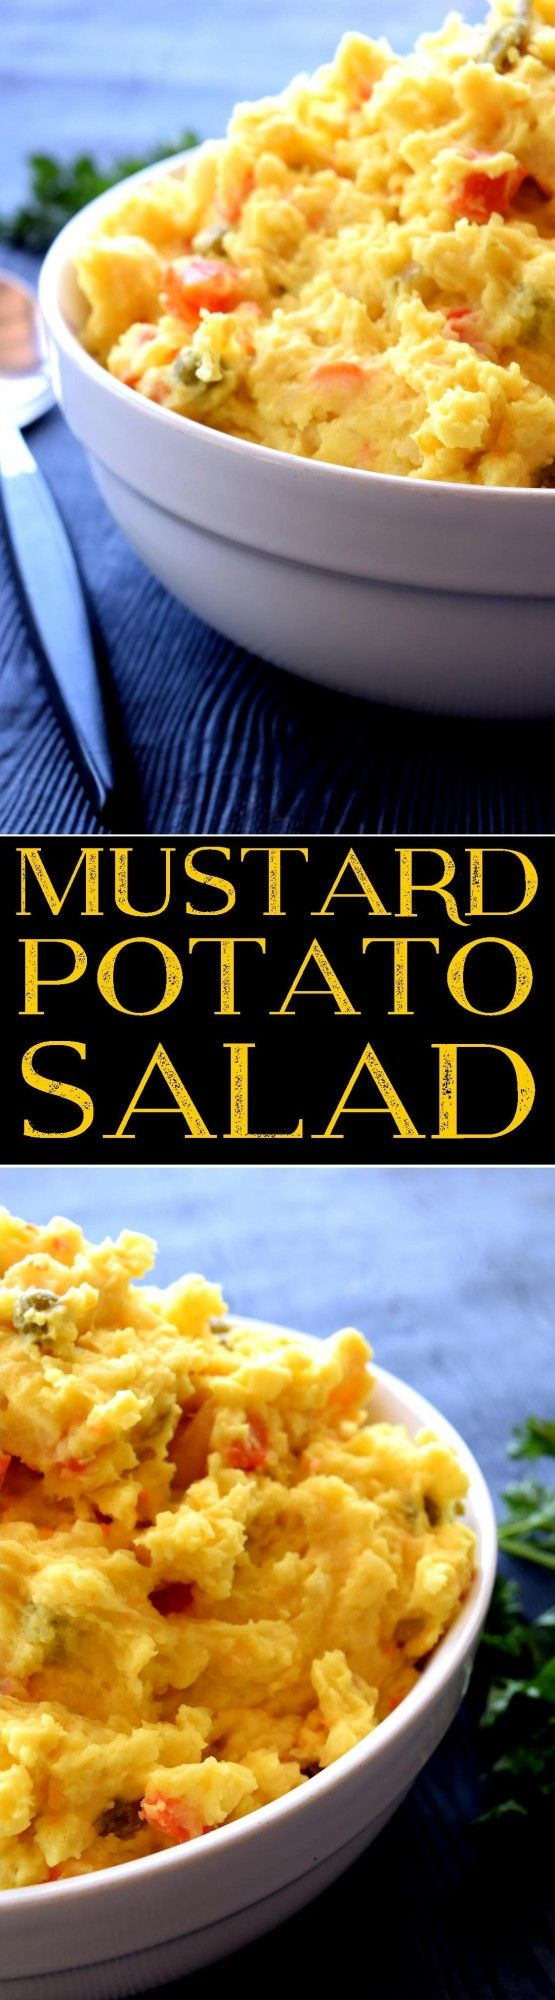 Mustard Potato Salad - Lord Byron's Kitchen